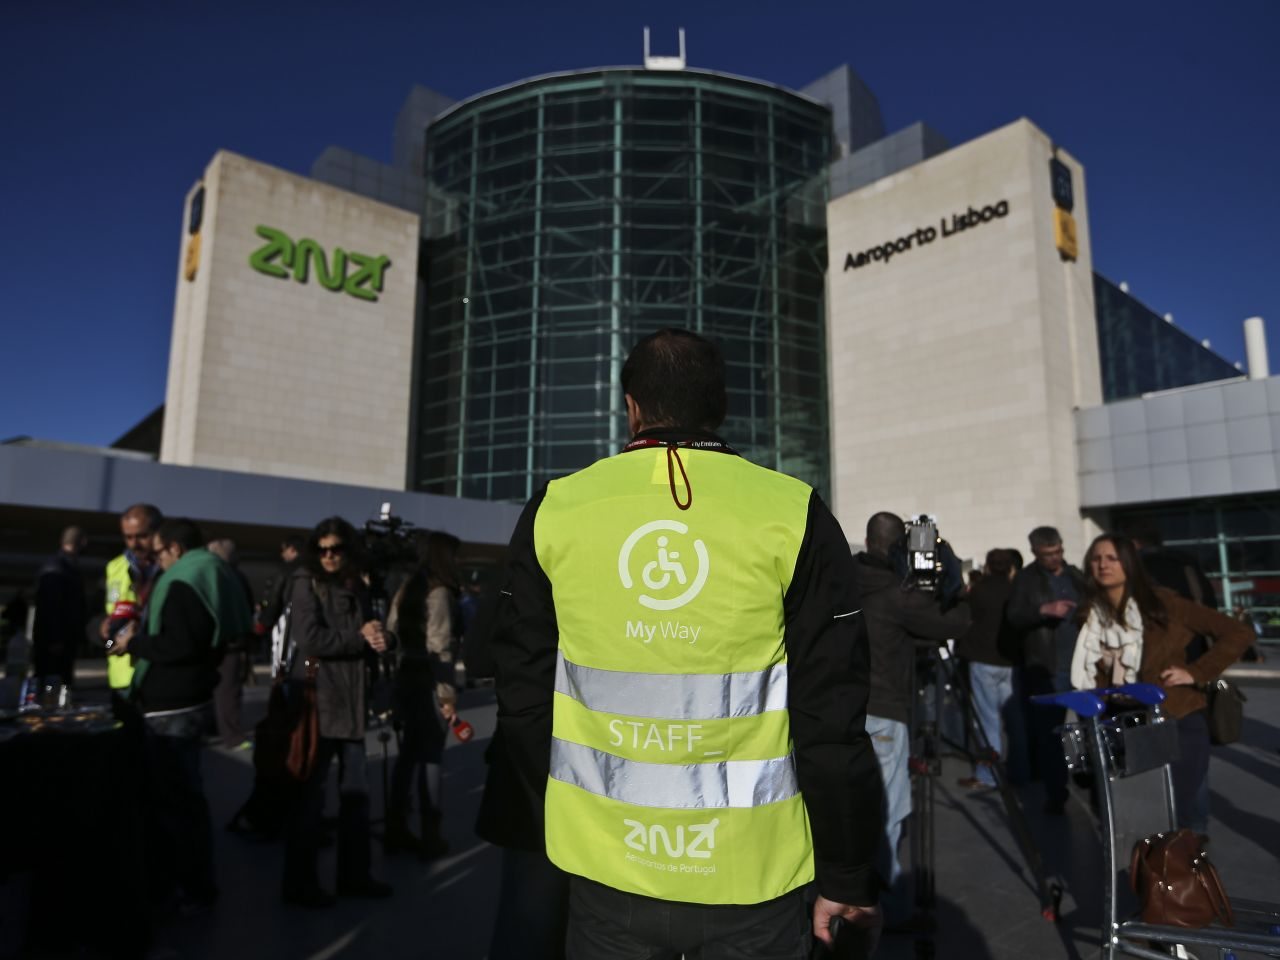 Noise levels measured around Lisbon Airport